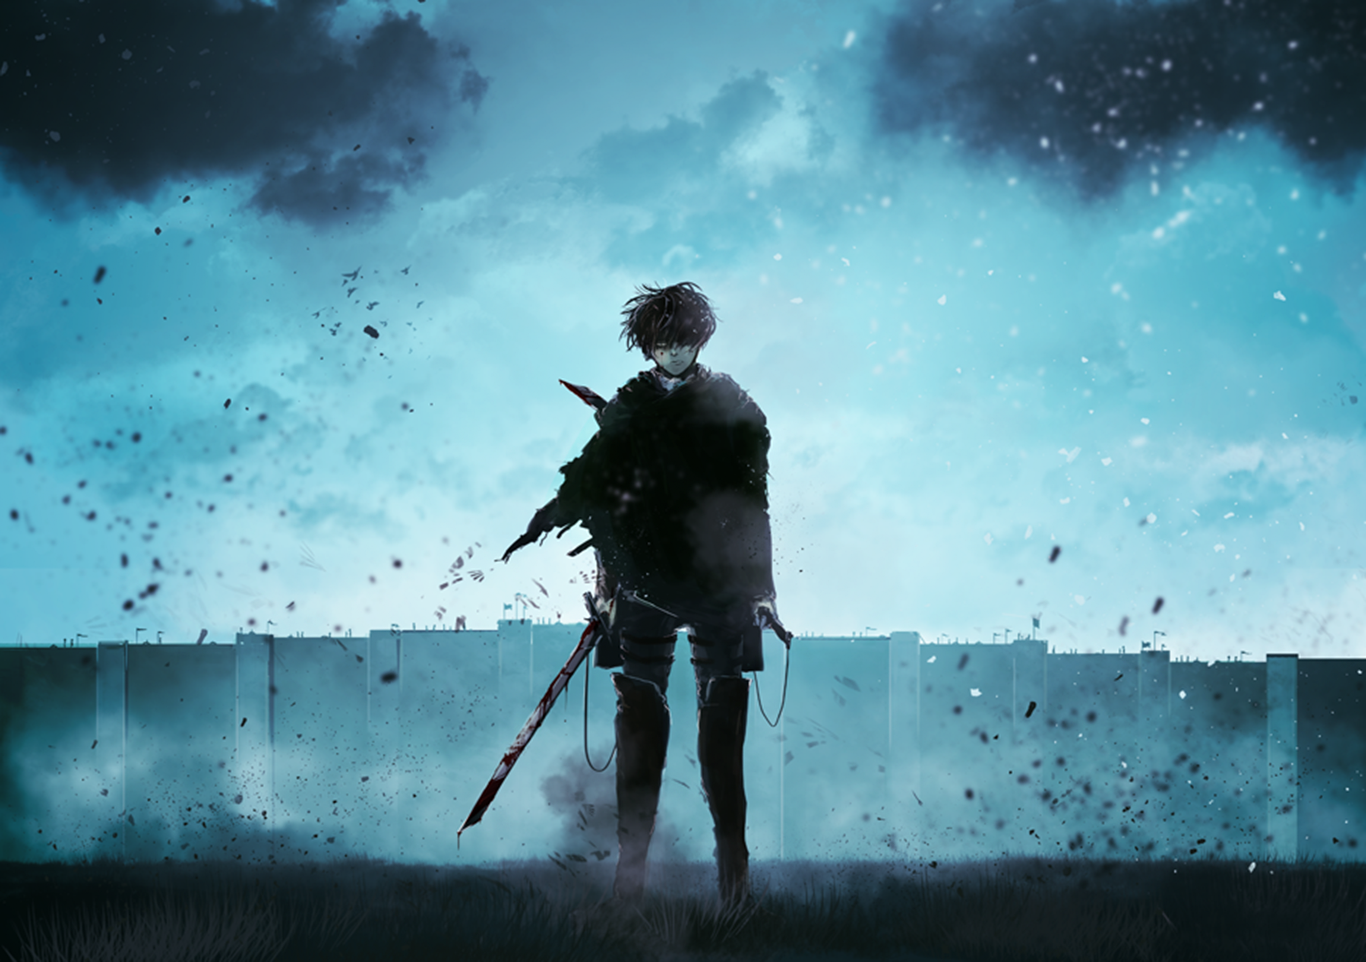 Levi Ackerman Computer Wallpapers Desktop Backgrounds 1366x962 Id 665354 Attack On Titan Attack On Titan Anime Attack On Titan Levi